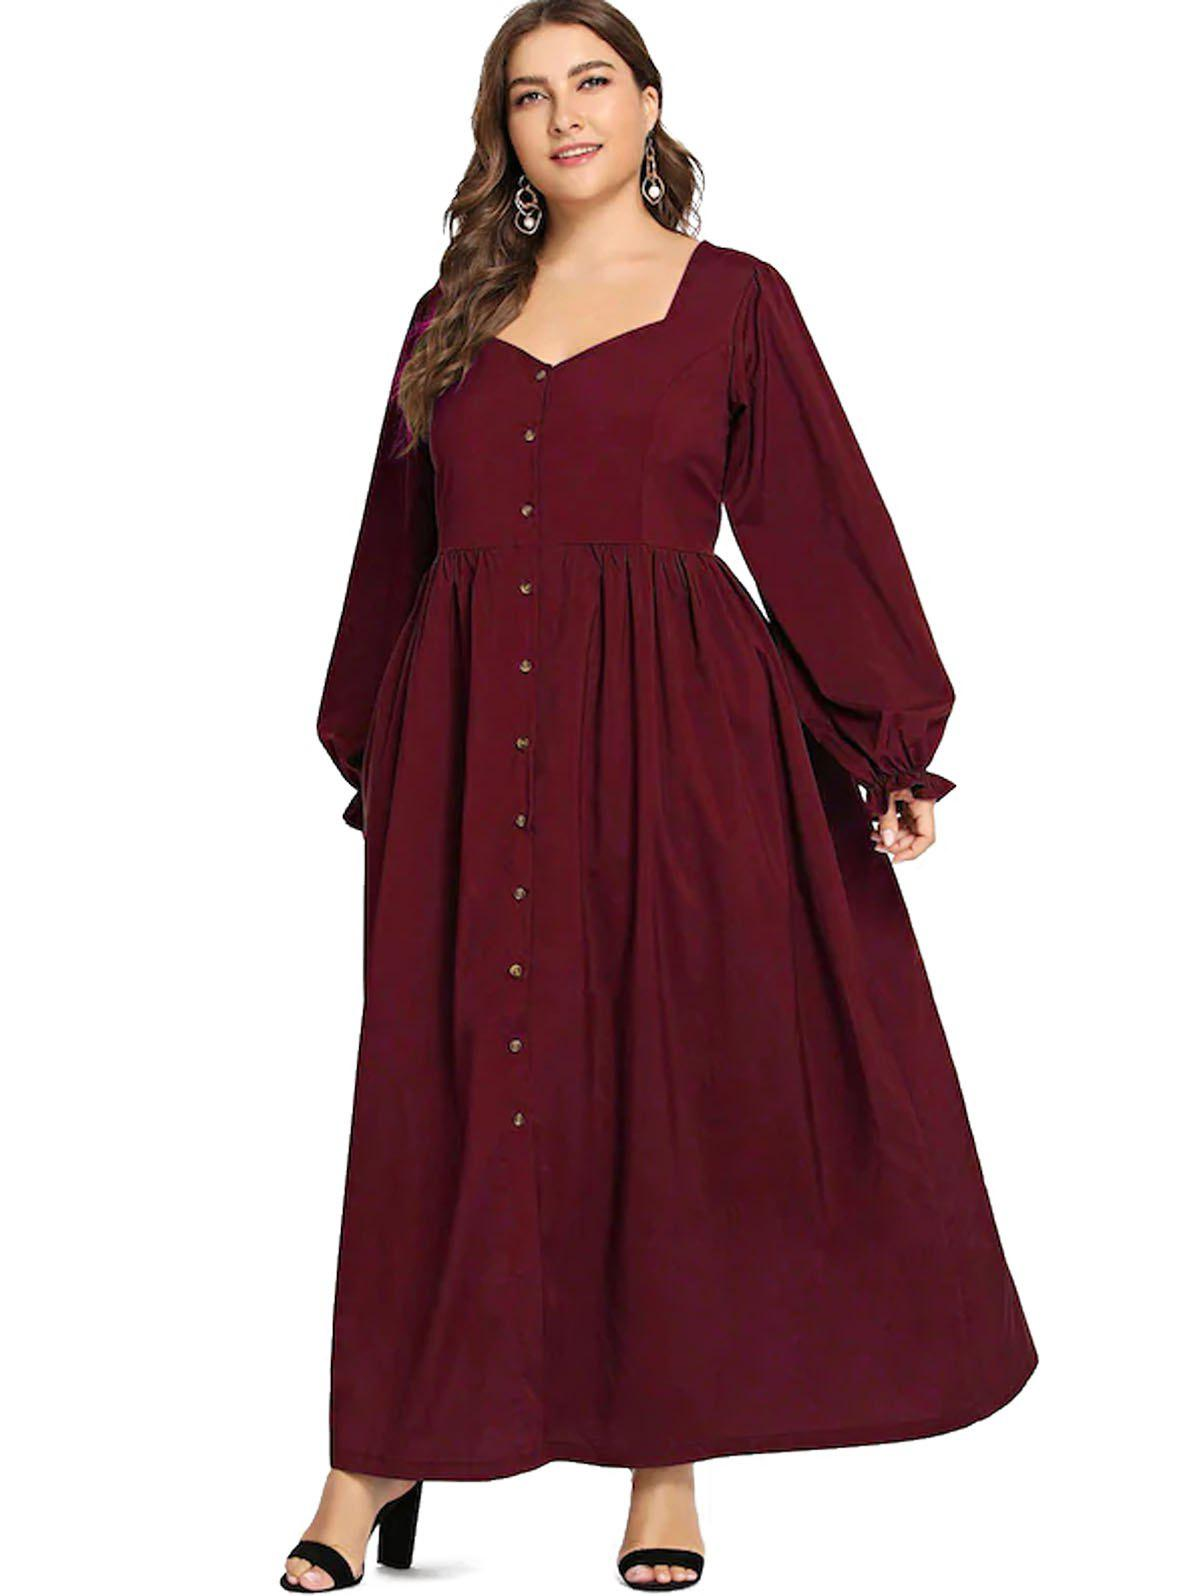 50% OFF] Plus Size Button Long Vintage Dress | Rosegal